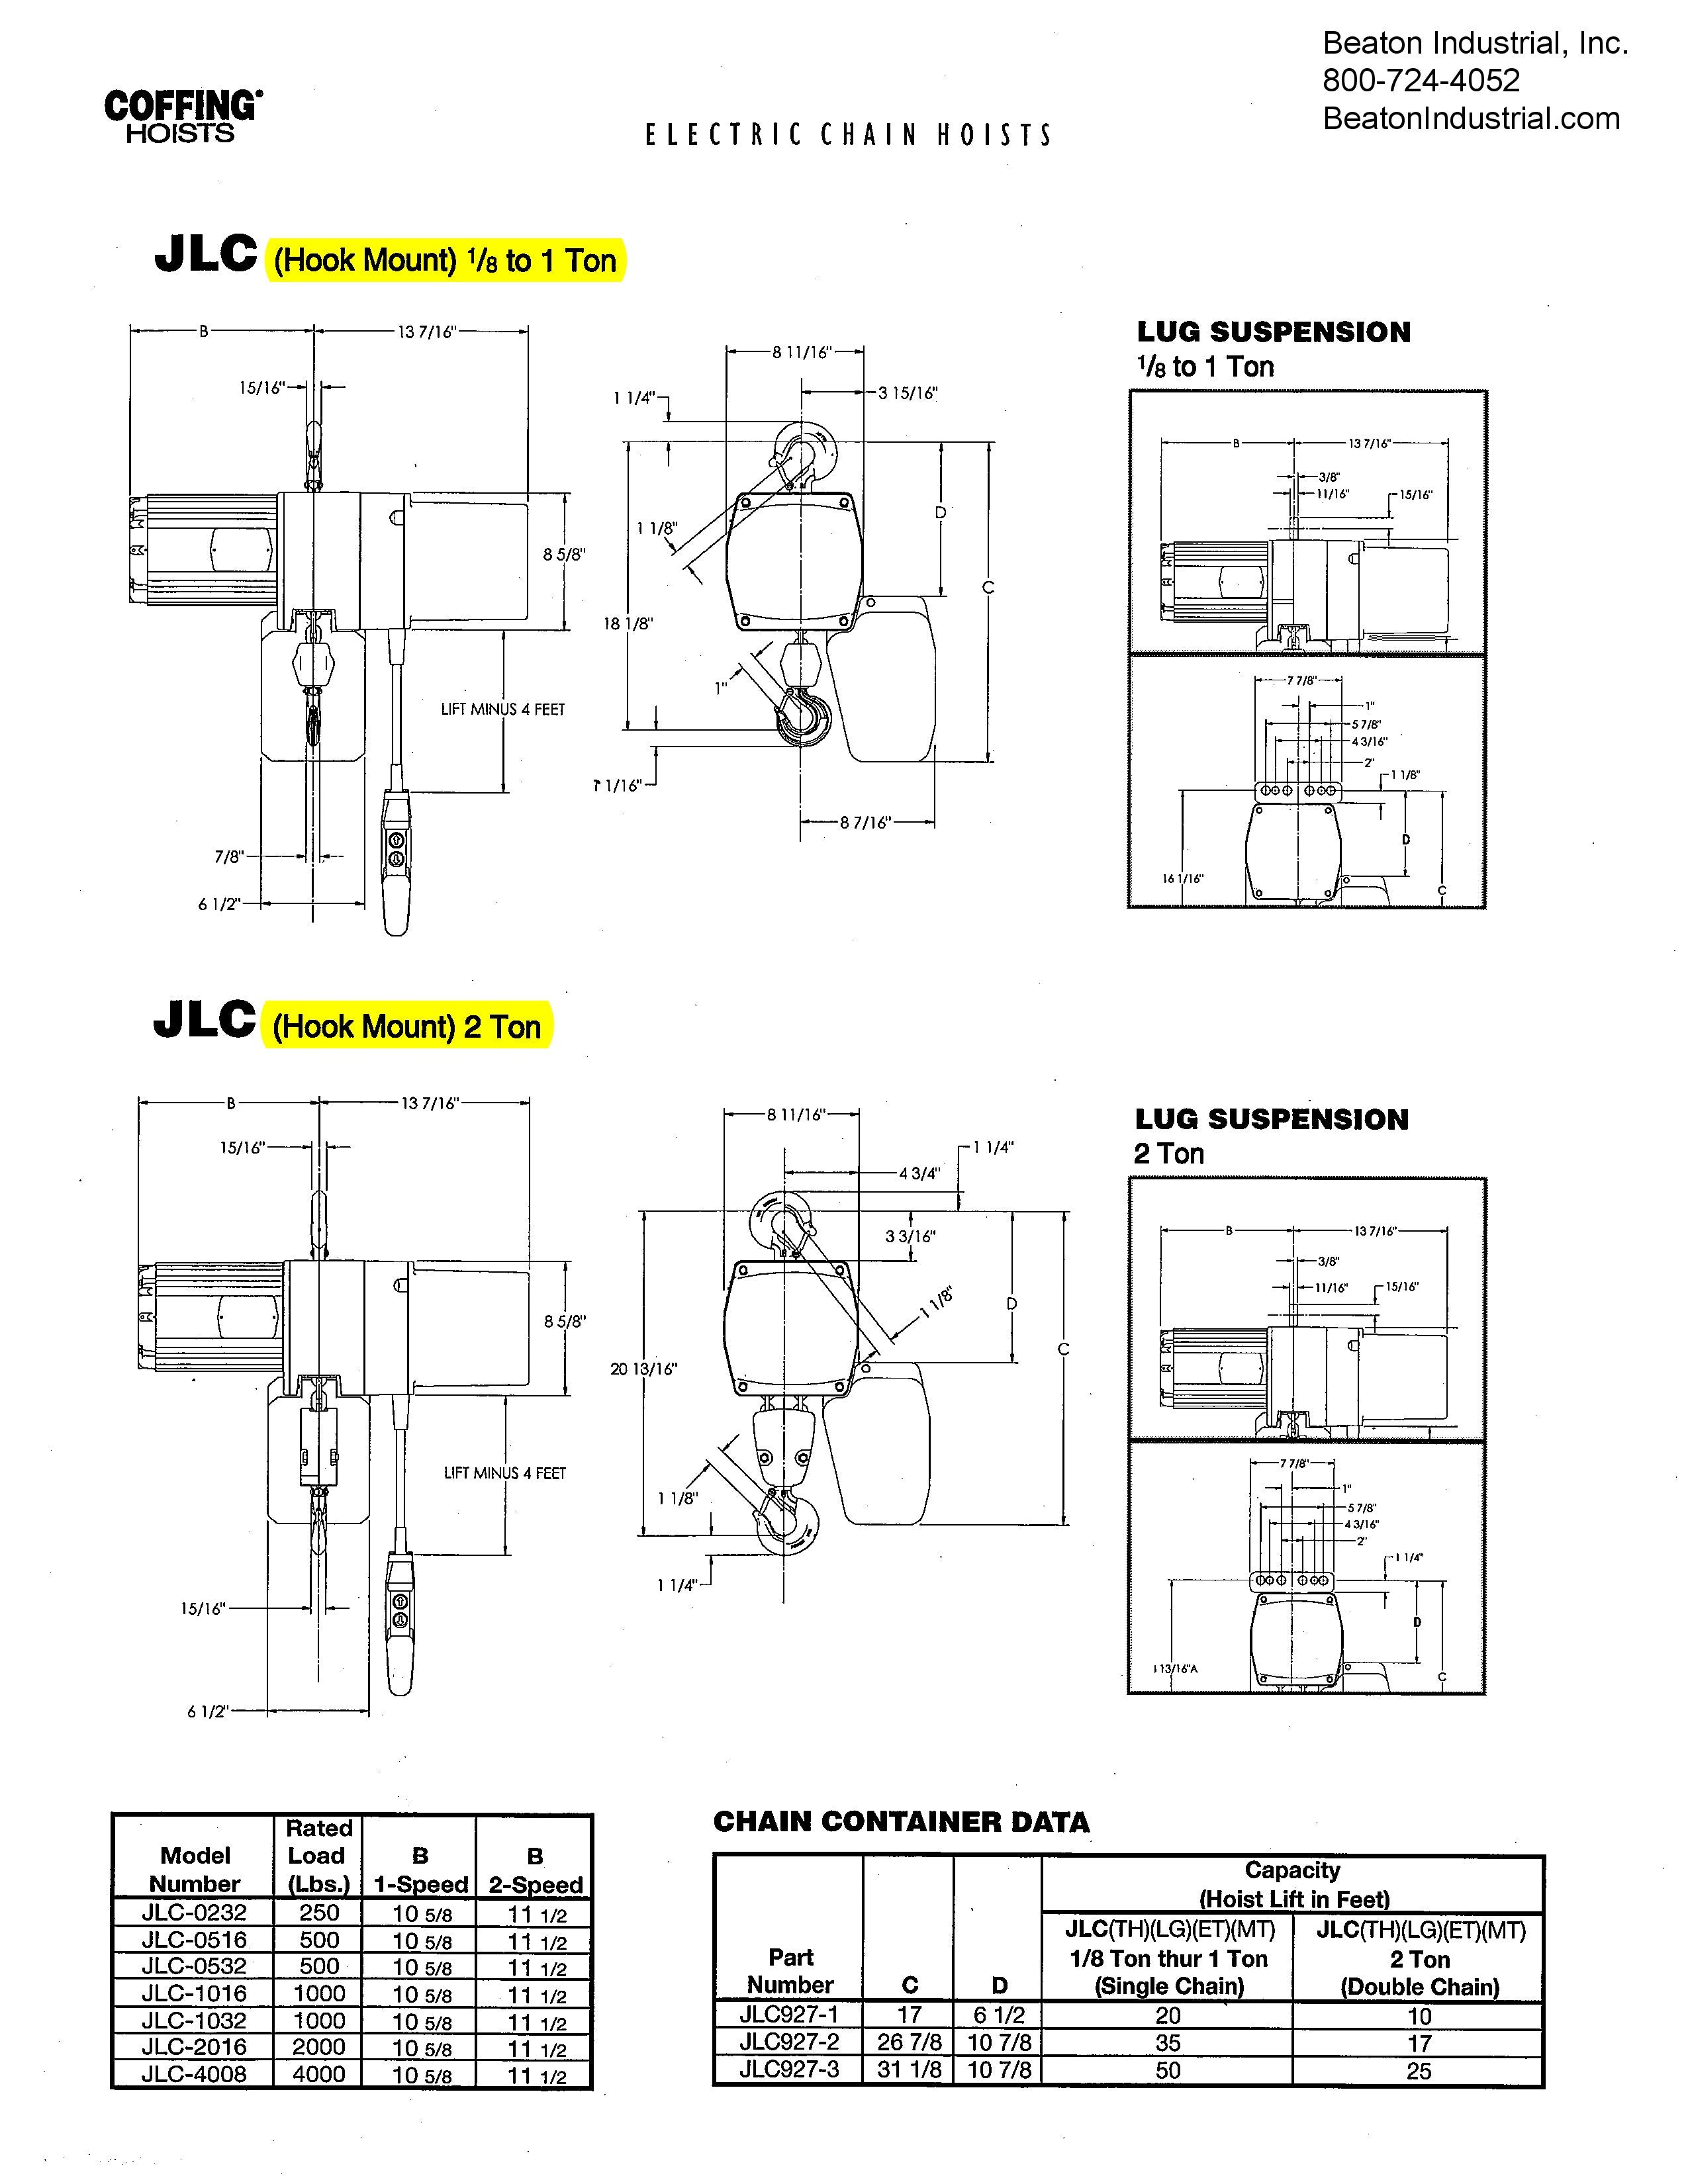 Raynor Control Hoist Wiring Diagram from cdn.shopify.com